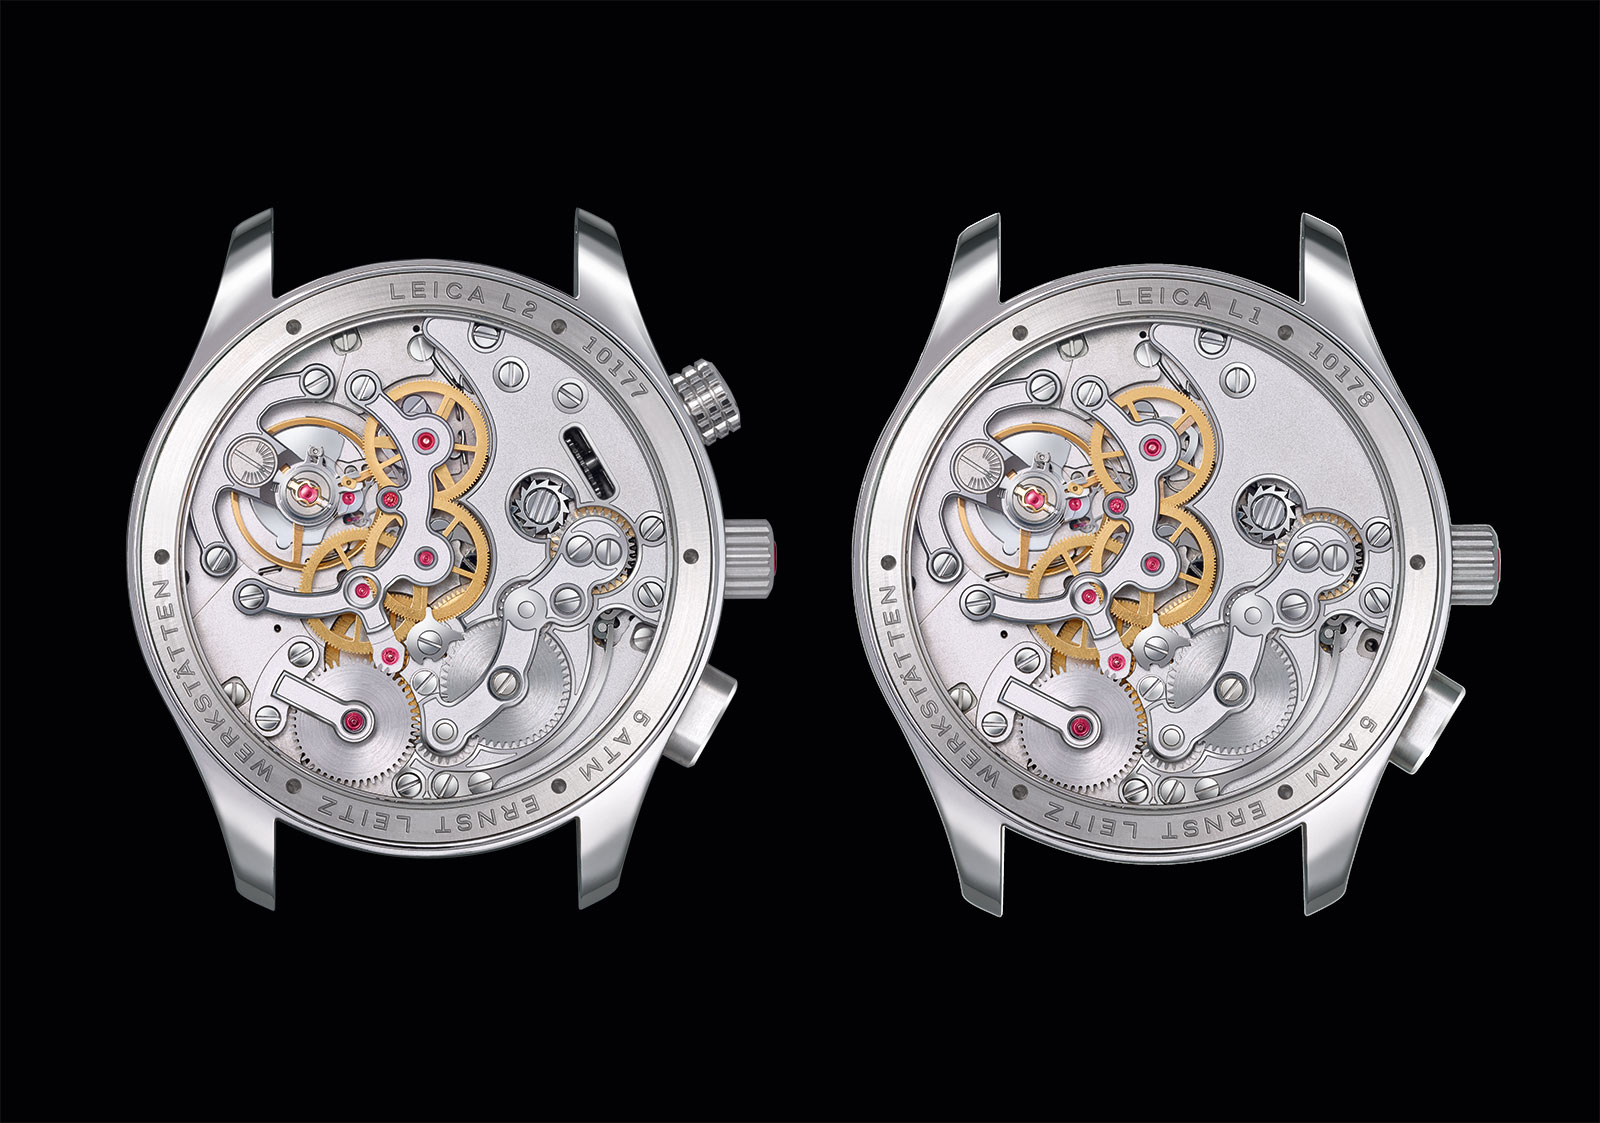 Leica L1 and L2 watch movement